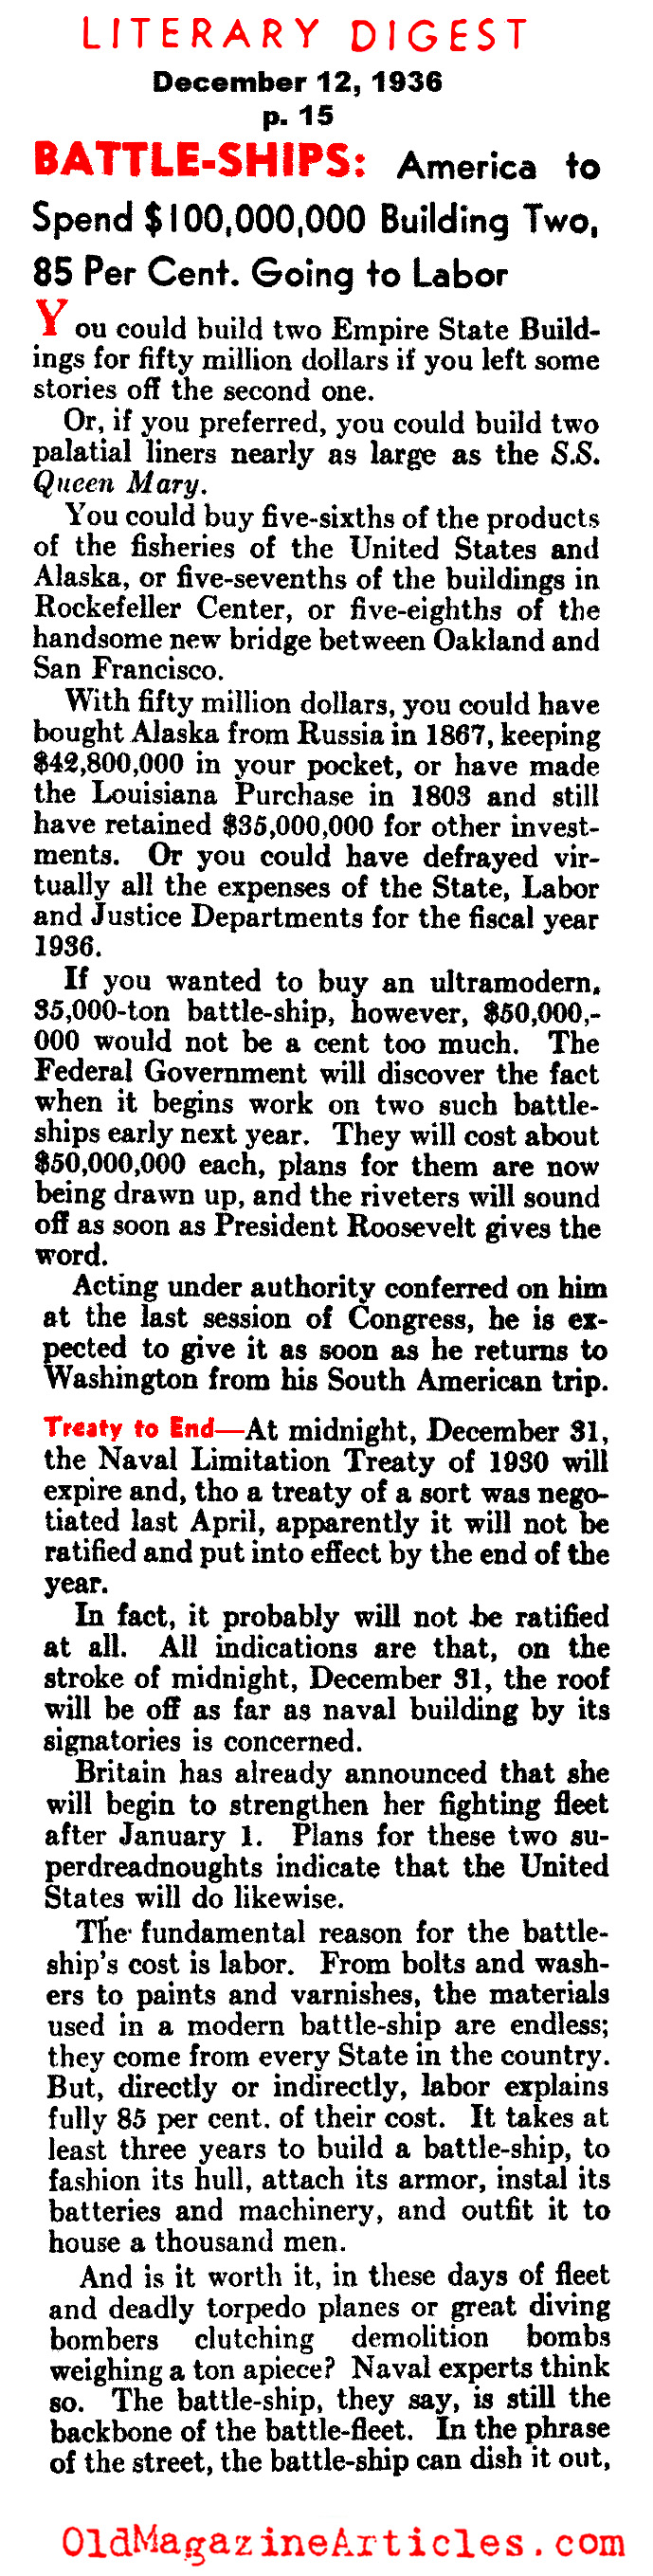 Military Buildup in the United States (Literary Digest, 1936)